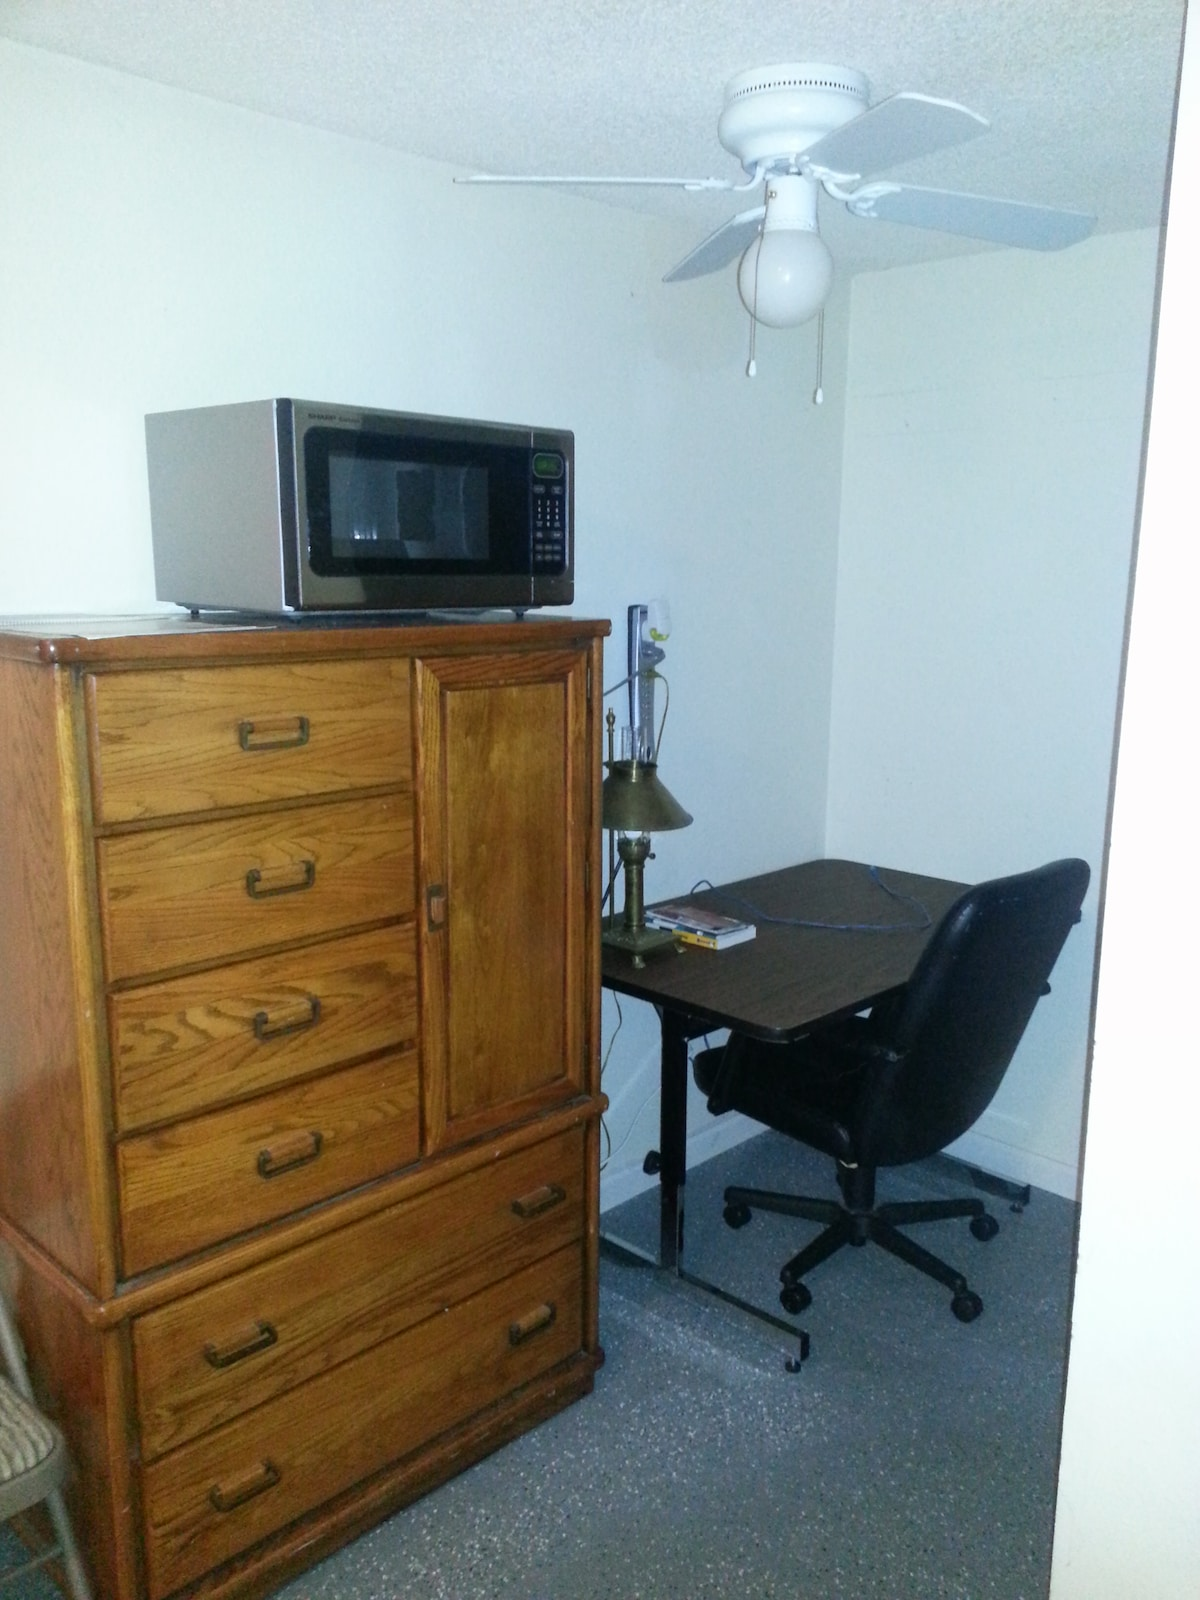 Microwave and dresser with desk and hard-wired network cable. Wireless 802.11n.